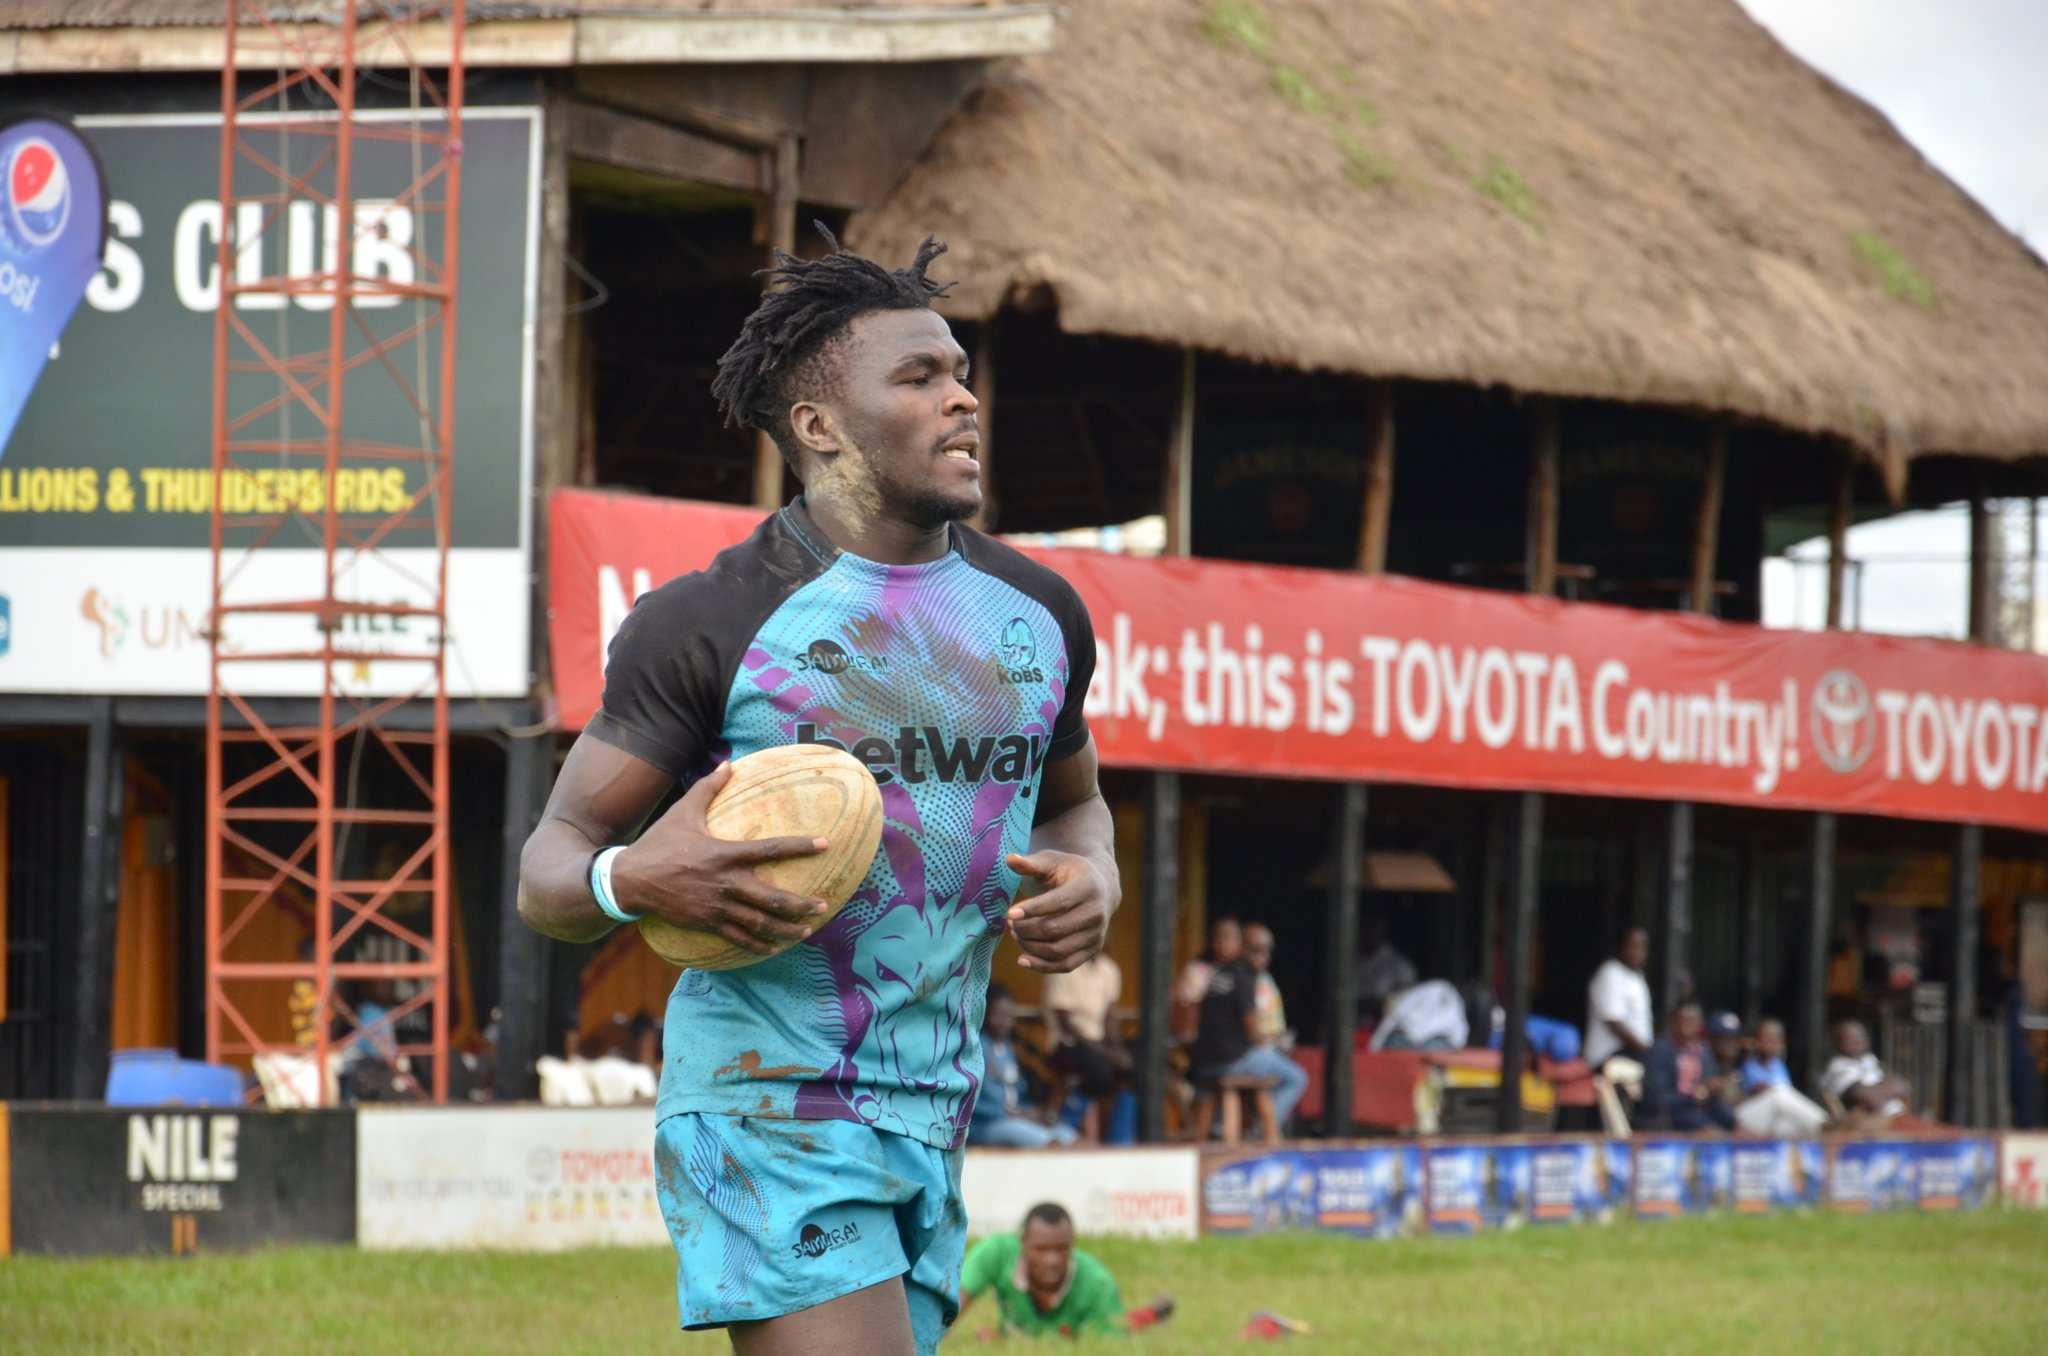 Kobs Rugby Club to begin series title defence in Pool A at Mileke Sevens